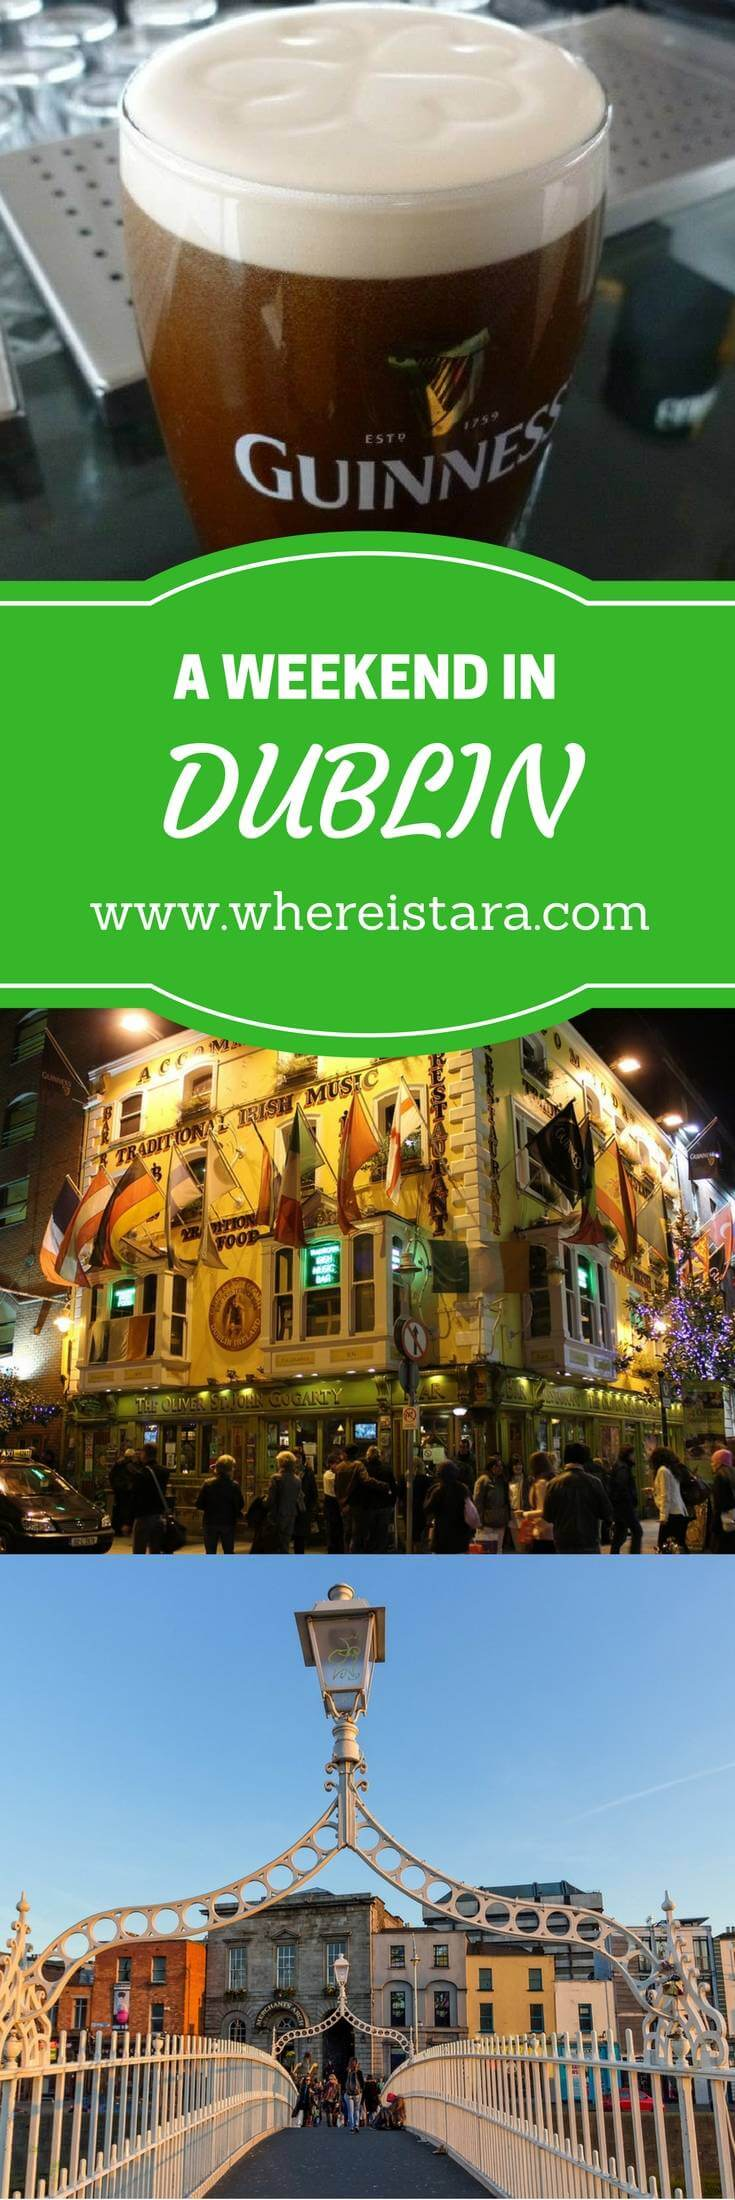 weekend in dublin where is tara povey top irish travel blogger